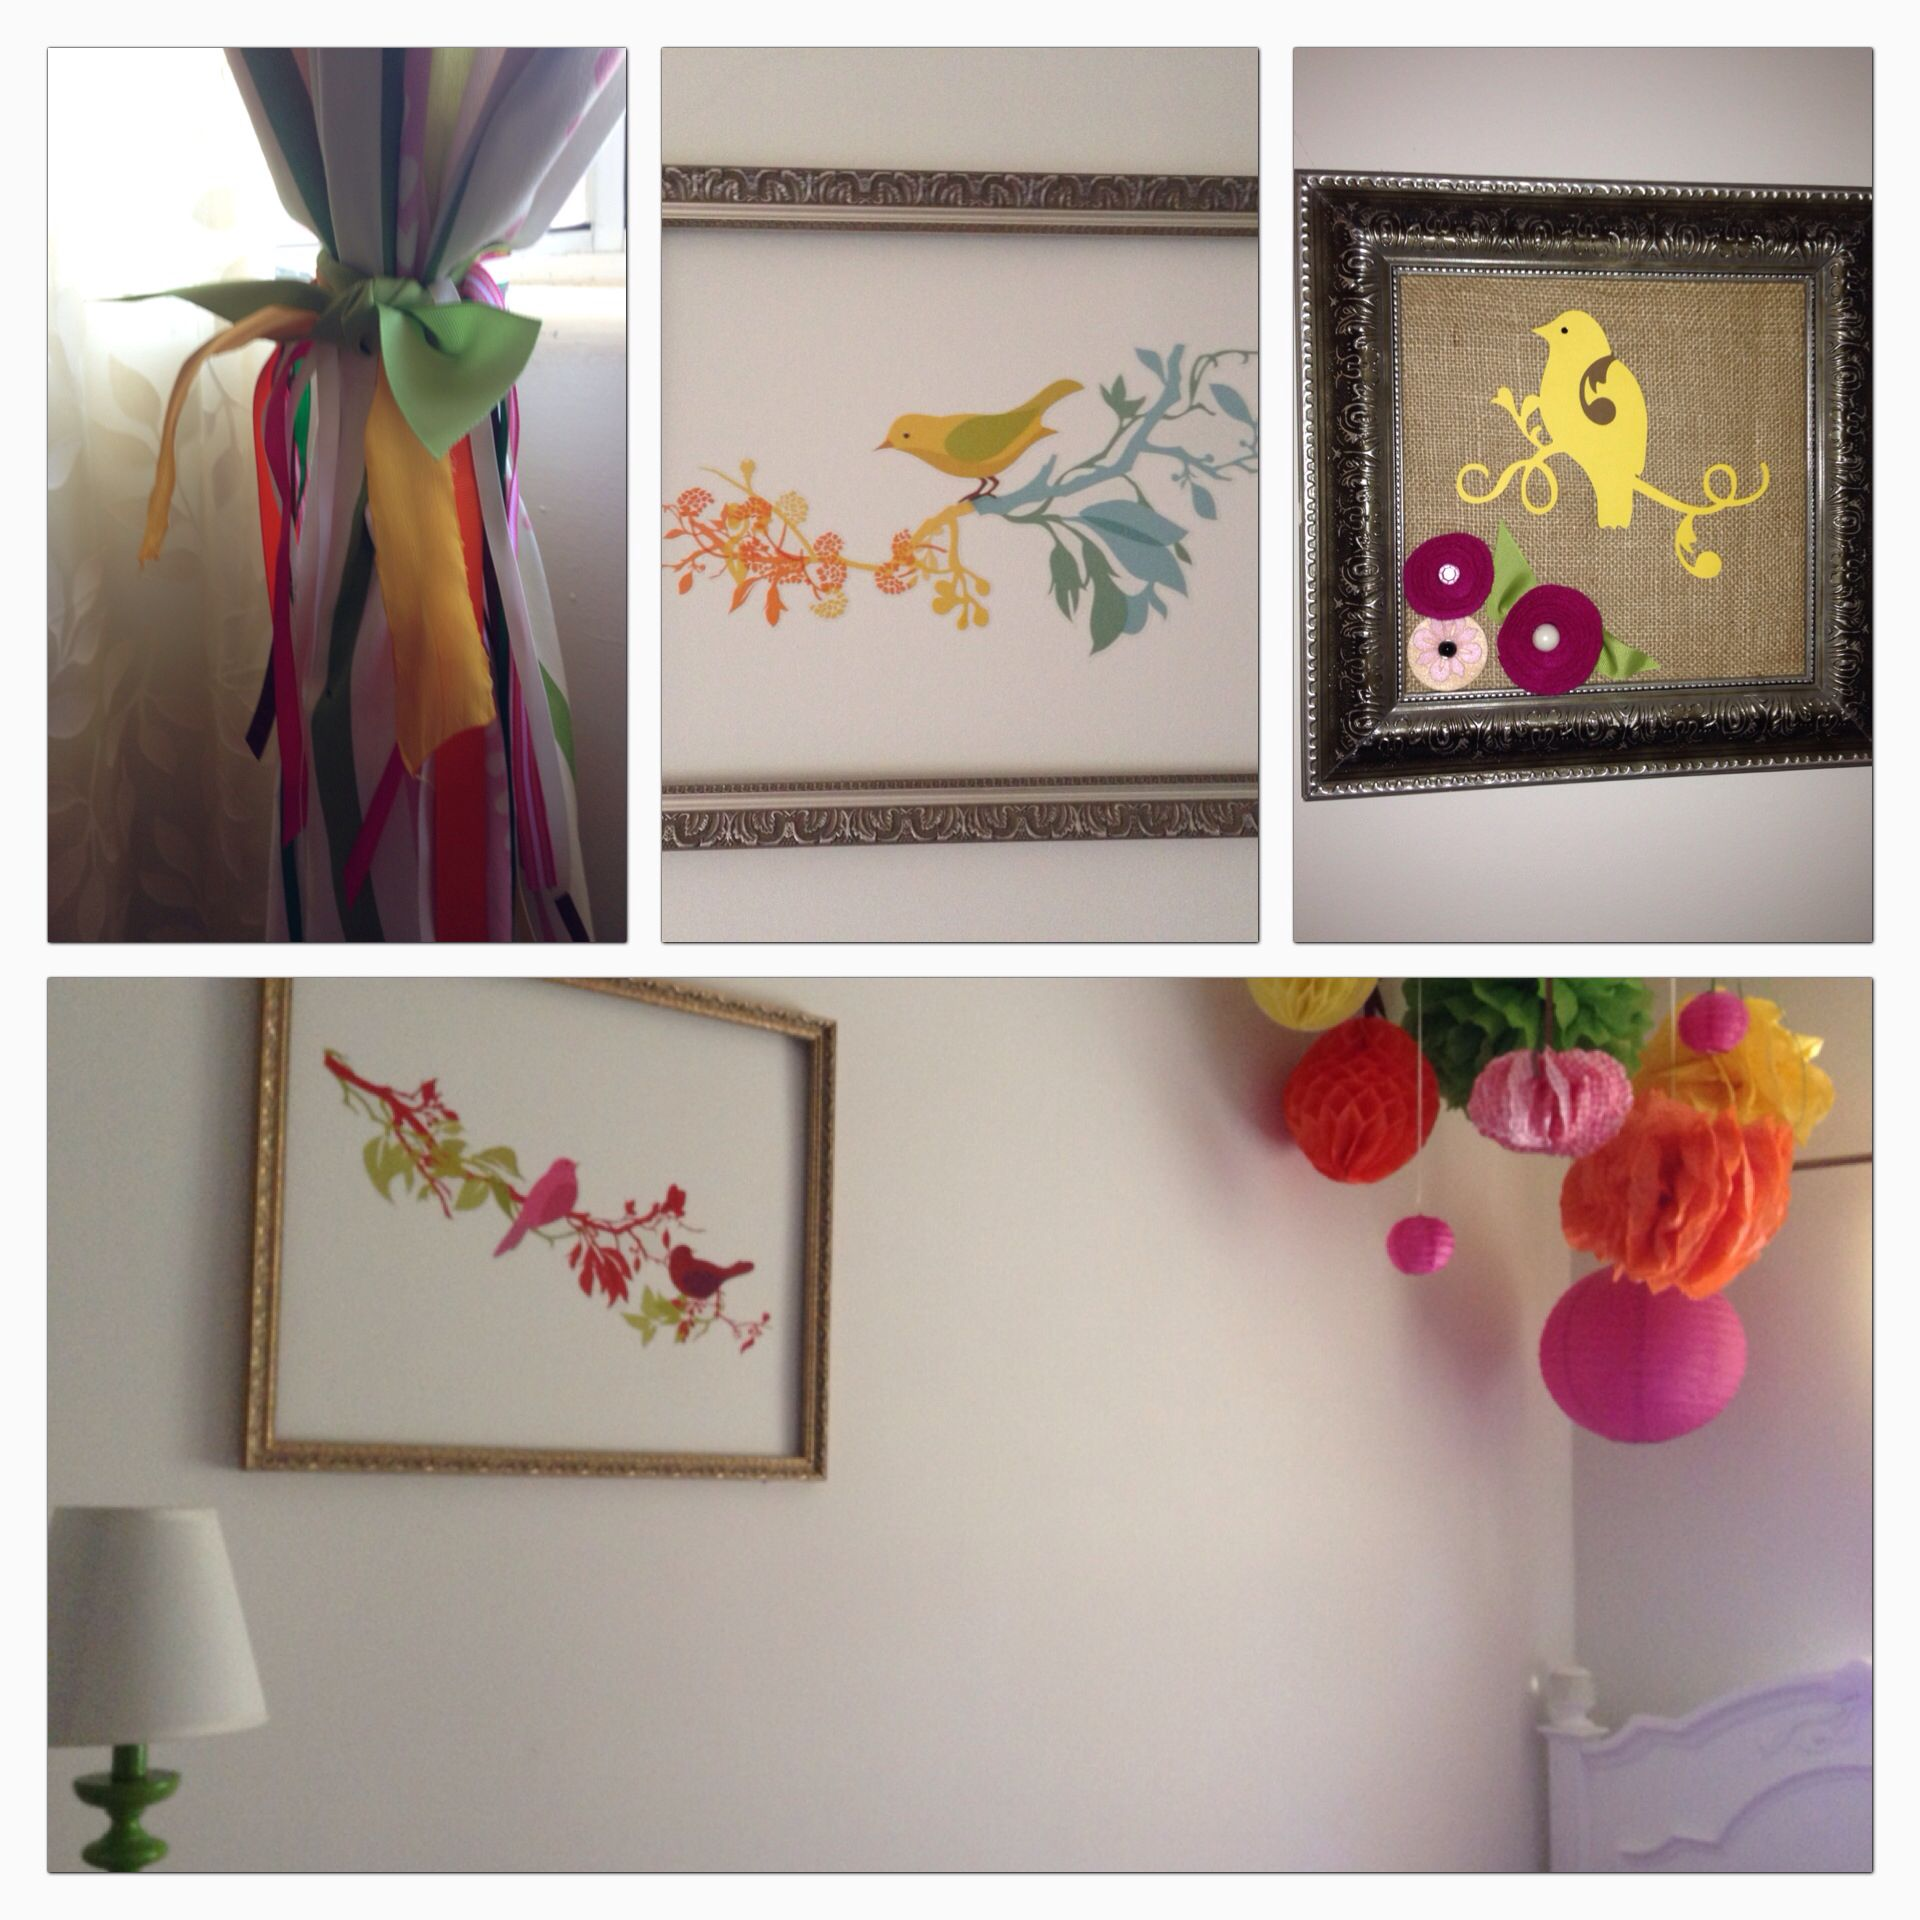 Wall Decals Framed With Pretty Frames, Tissue Paper Balls Hung